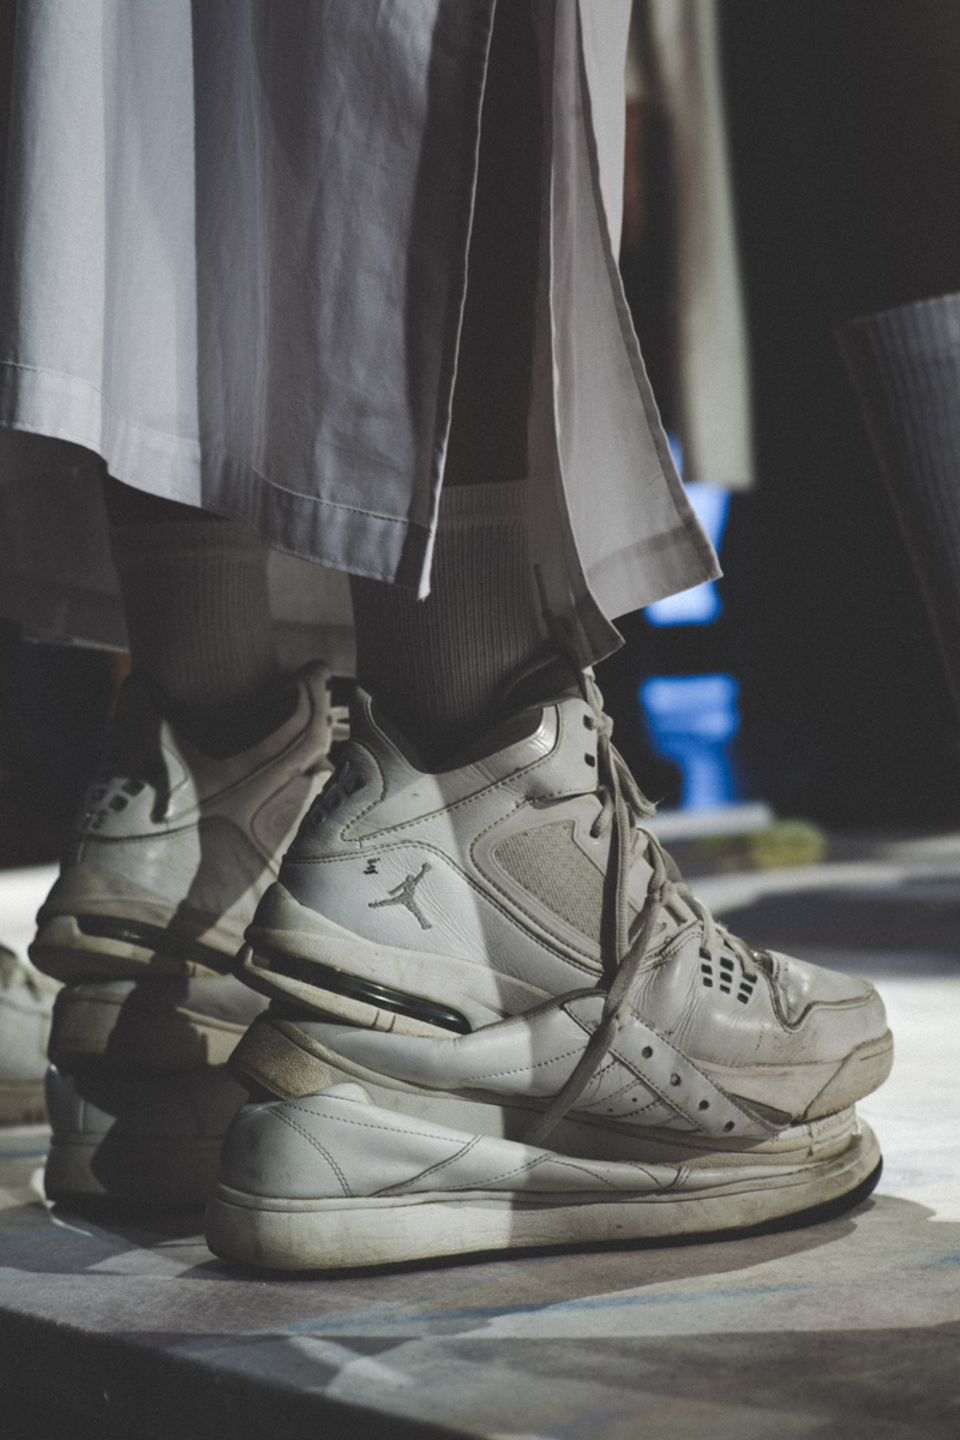 f4e15aa5f ... is that it's funny seeing them translated as a clunkier version. I was  looking up Eckhaus Latta online, and I saw this one shoe they did that was like  a ...